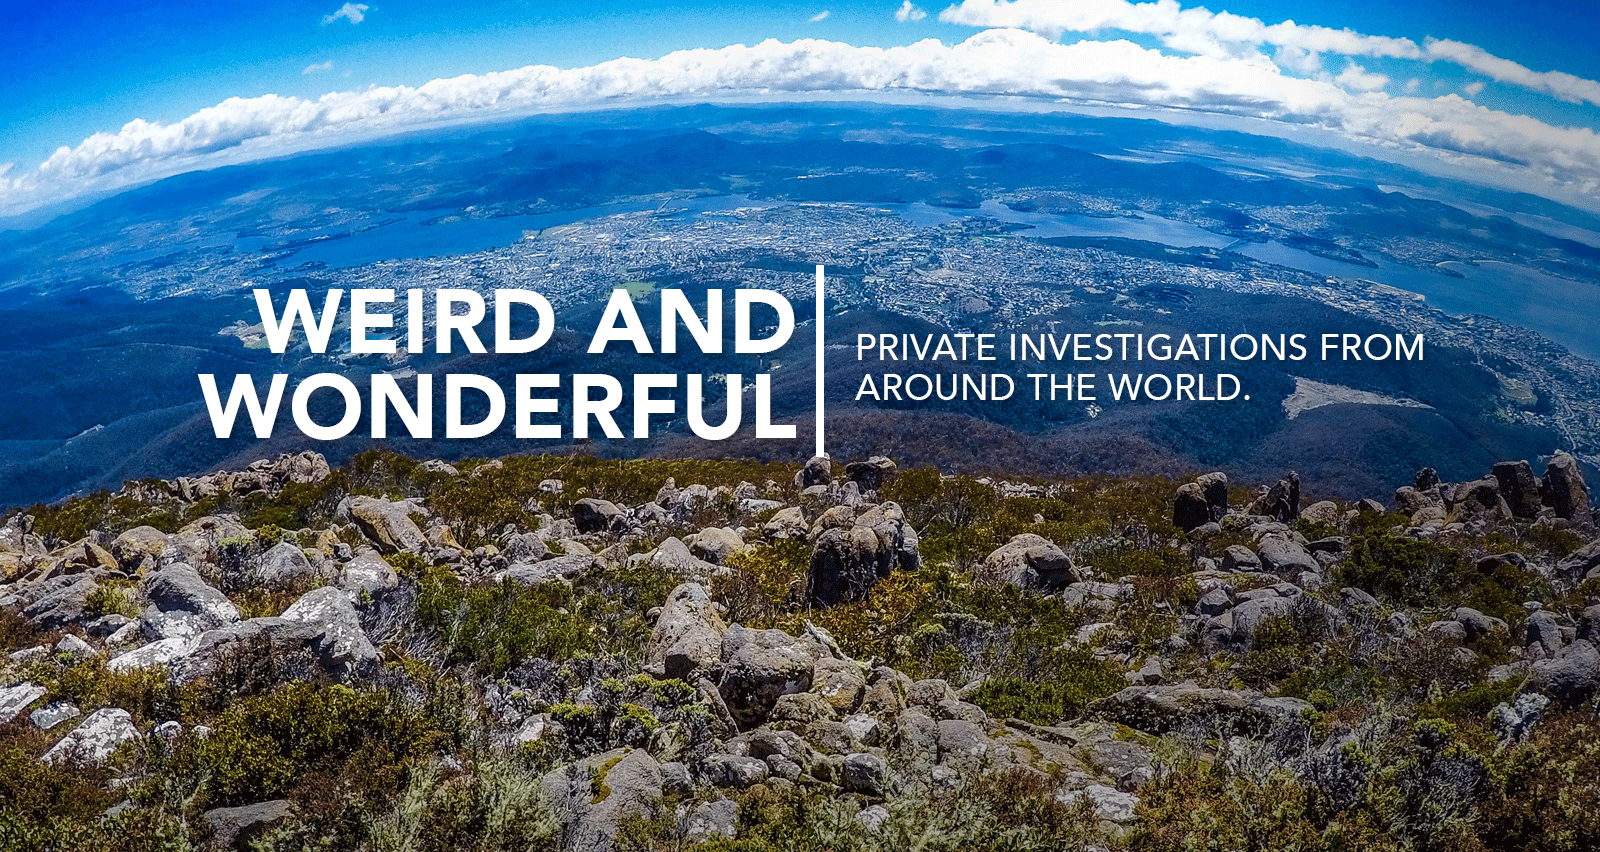 Weird and Wonderful investigations